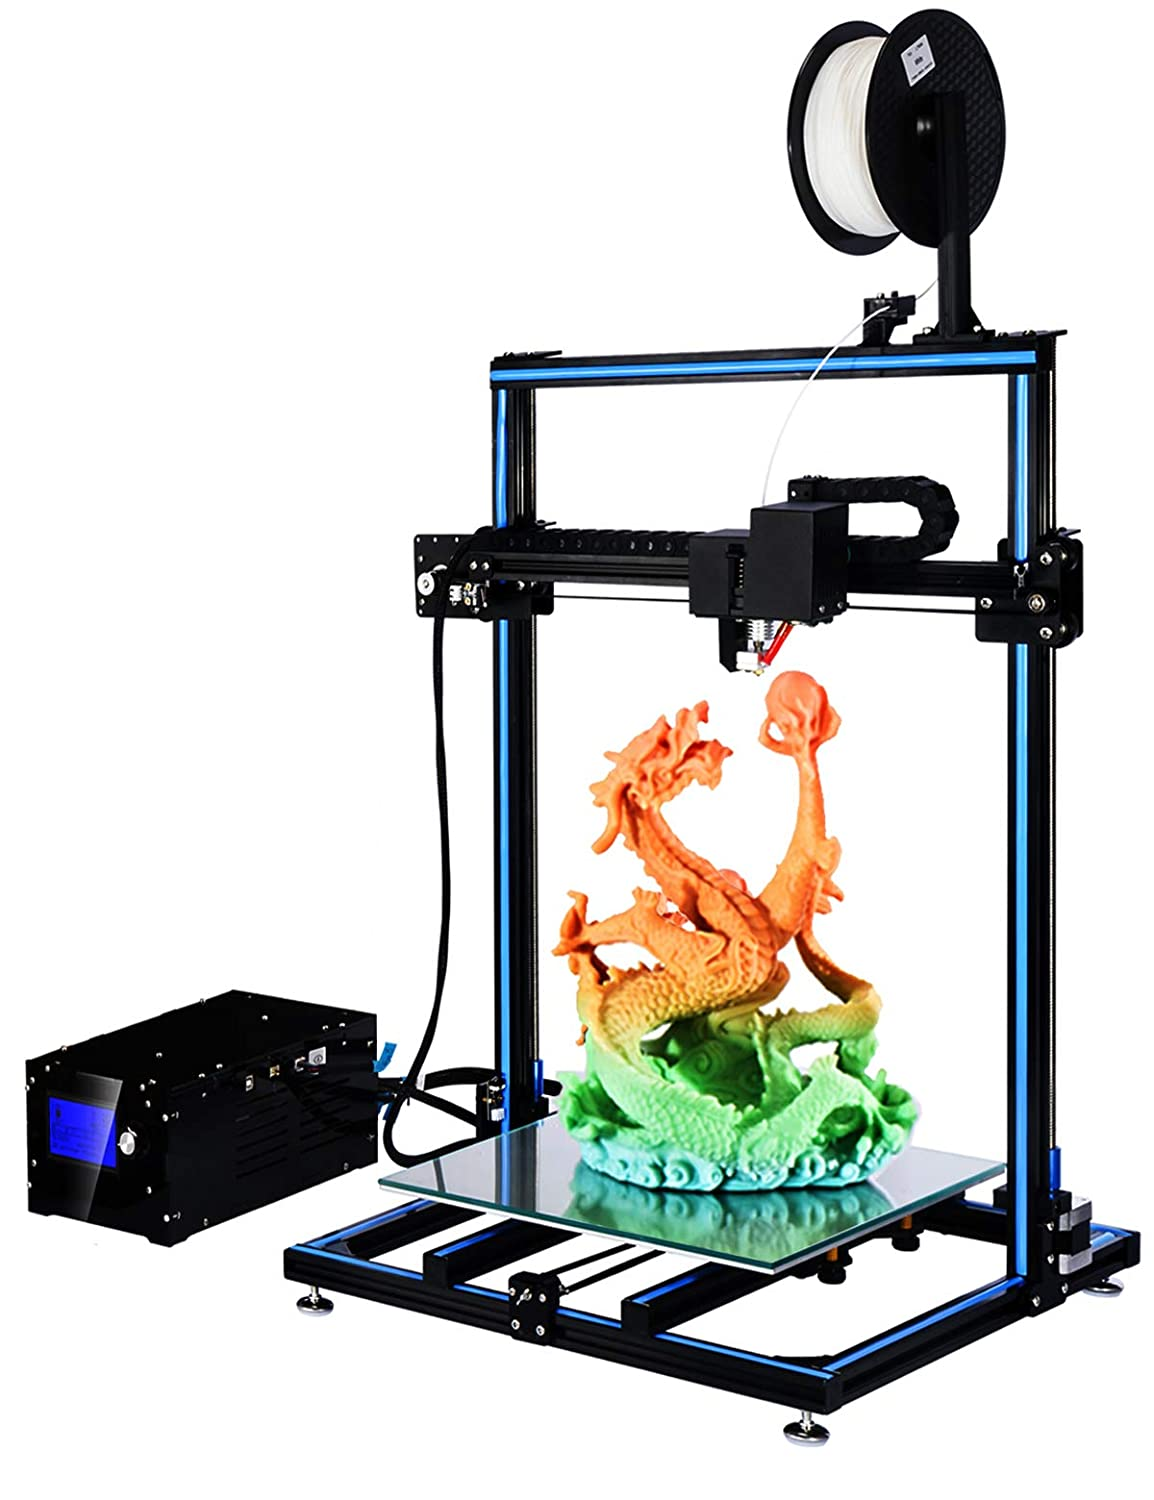 ADIMLab 3D Printer Assembled 24V Prusa I3 3D Printing Size 310X310X410 with Heat Bed and Glass Control Box PLA Supply Auto Leveling Method